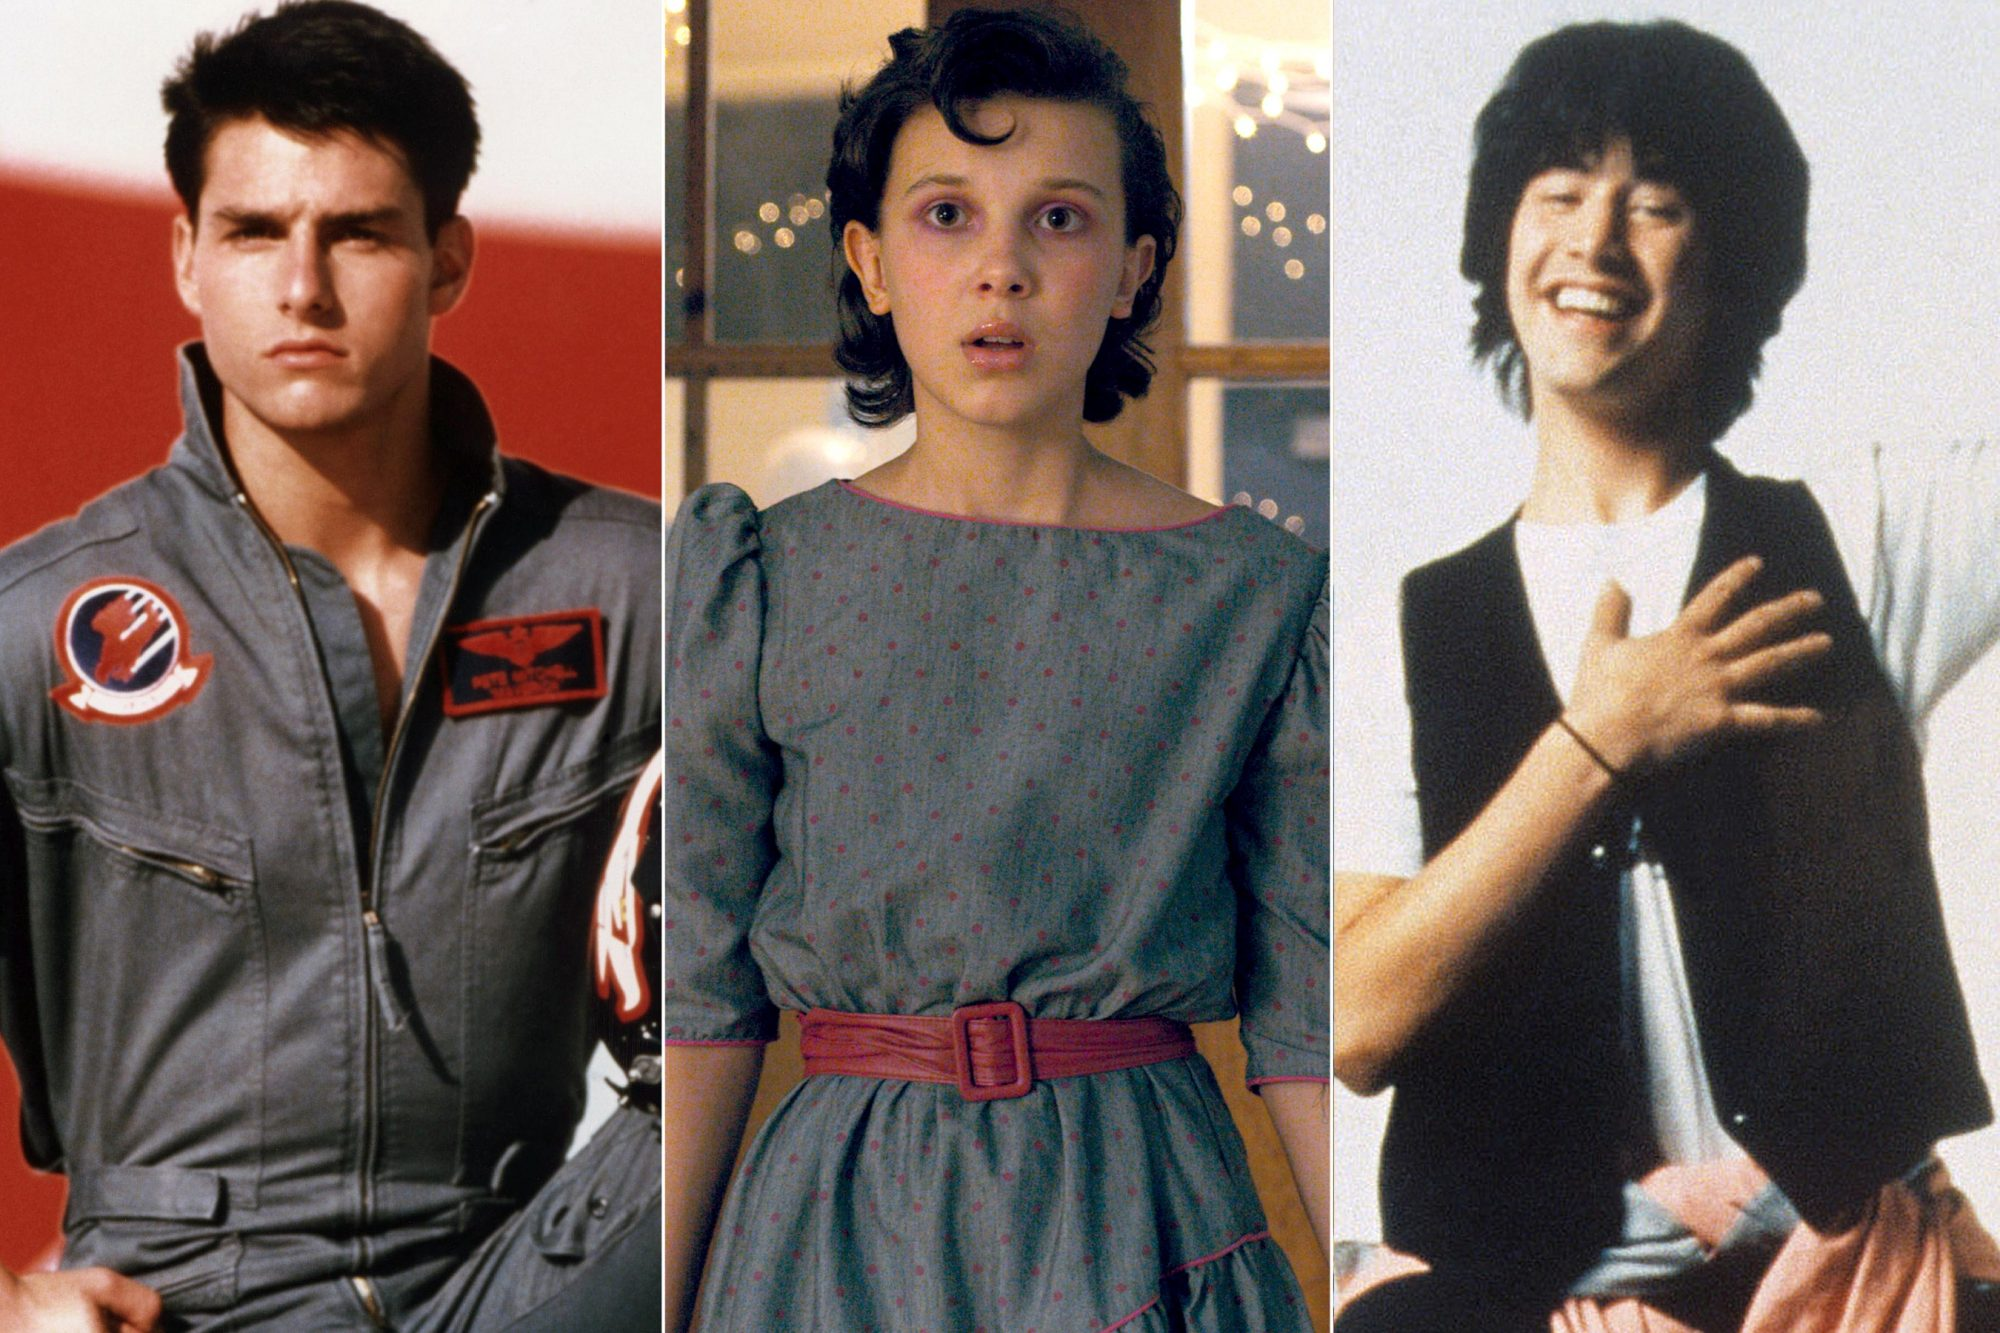 Top Gun, Stranger Things, Bill and Ted's Excellent Adventure